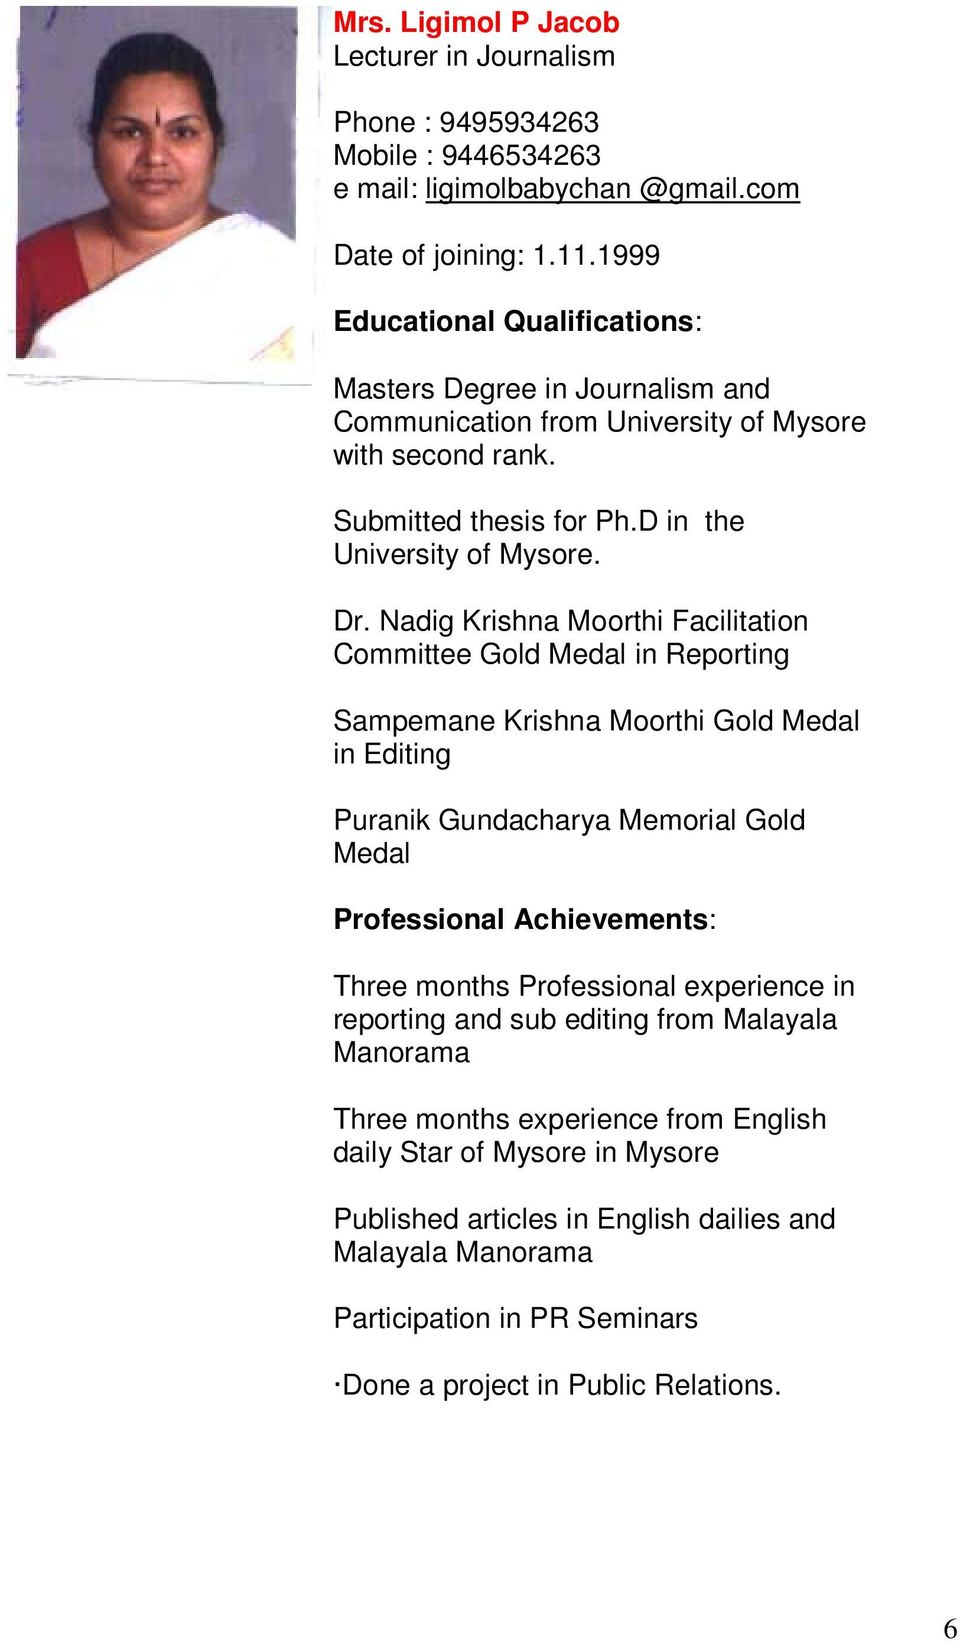 Nadig Krishna Moorthi Facilitation Committee Gold Medal in Reporting Sampemane Krishna Moorthi Gold Medal in Editing Puranik Gundacharya Memorial Gold Medal Professional Achievements: Three months